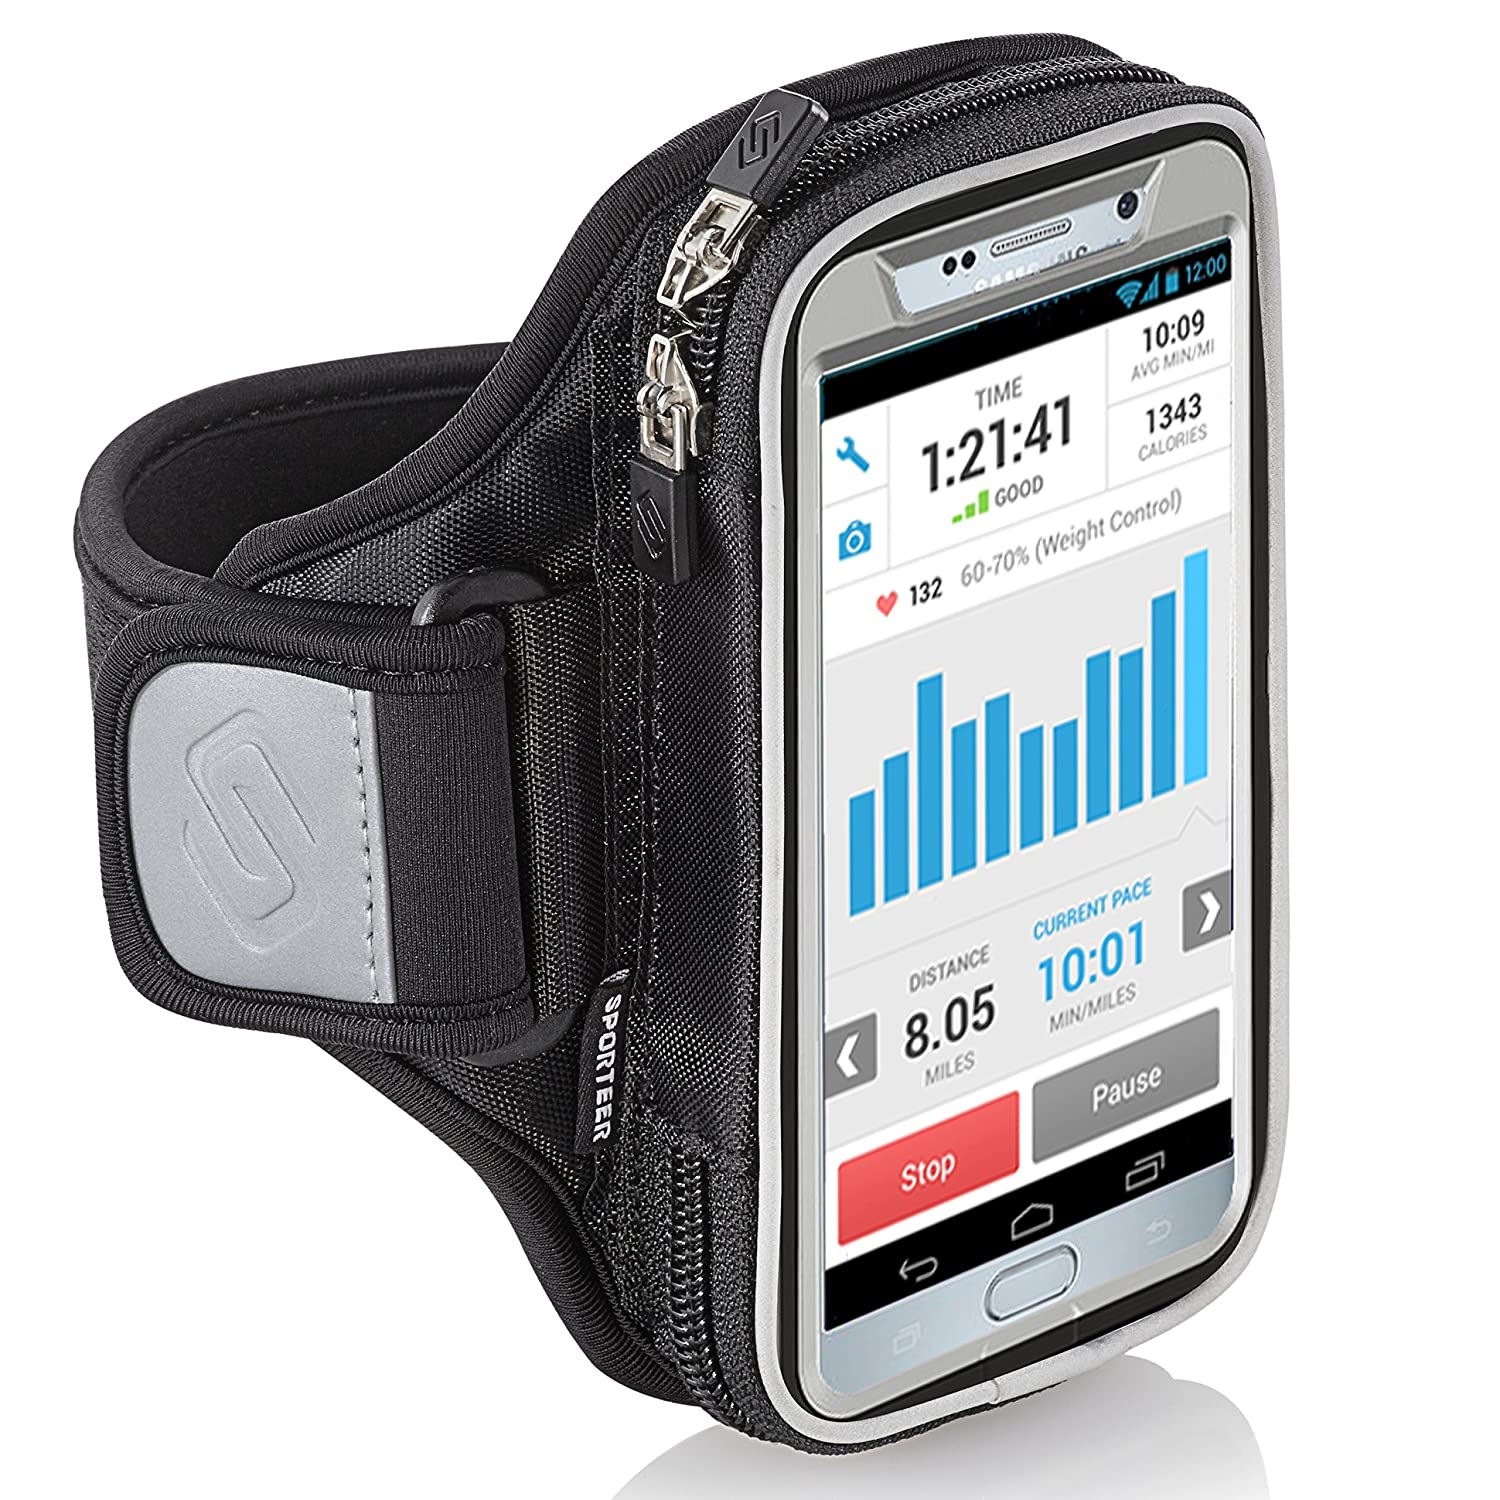 Sporteer Entropy E8 Running Armband - iPhone 11 Pro Max, Xs Max, iPhone 11, XR, 8 Plus, 7 Plus, Galaxy S10+, S10, Note 10, 9, 8, S9 Plus, S8 Plus, Pixel 3 XL, 2 XL, LG, Moto - FITS Cases (M/L)